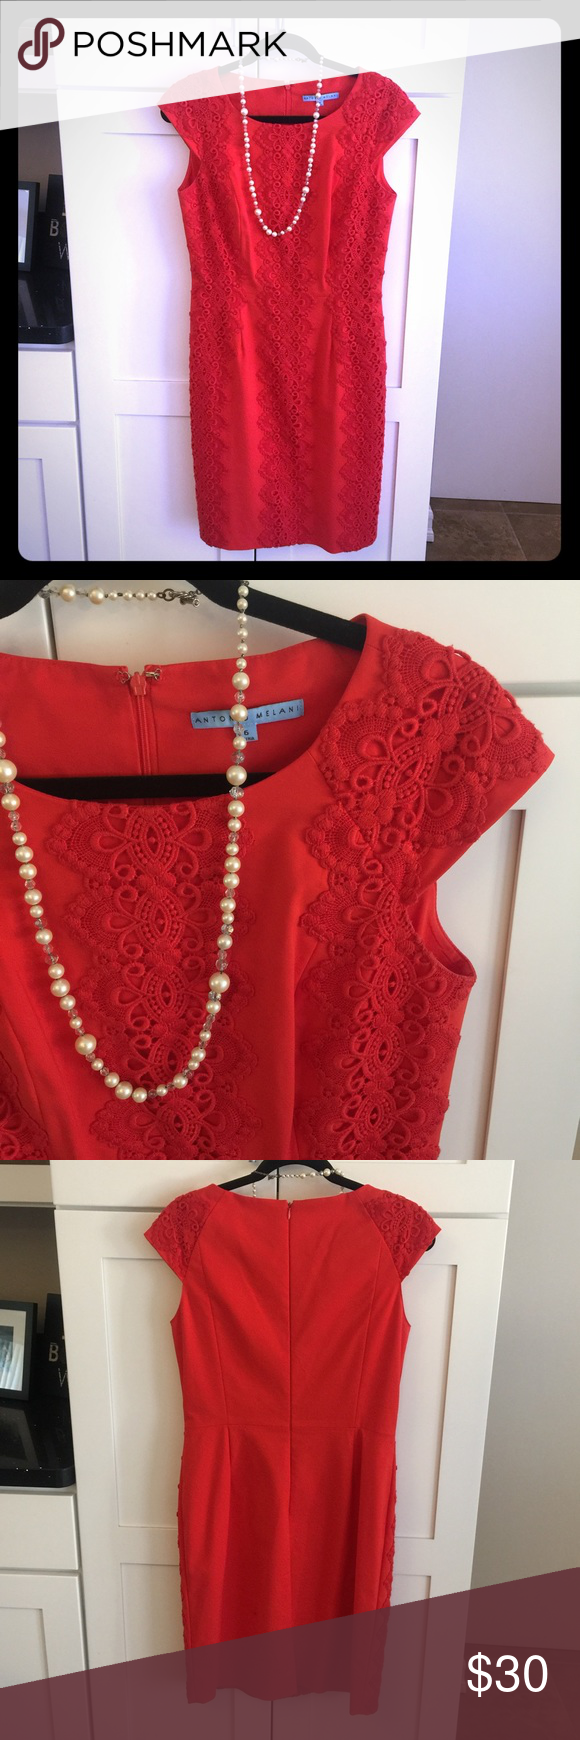 Coral Embroidered Sheath Dress Form fitting - perfect condition. Fits like a big 8. ANTONIO MELANI Dresses